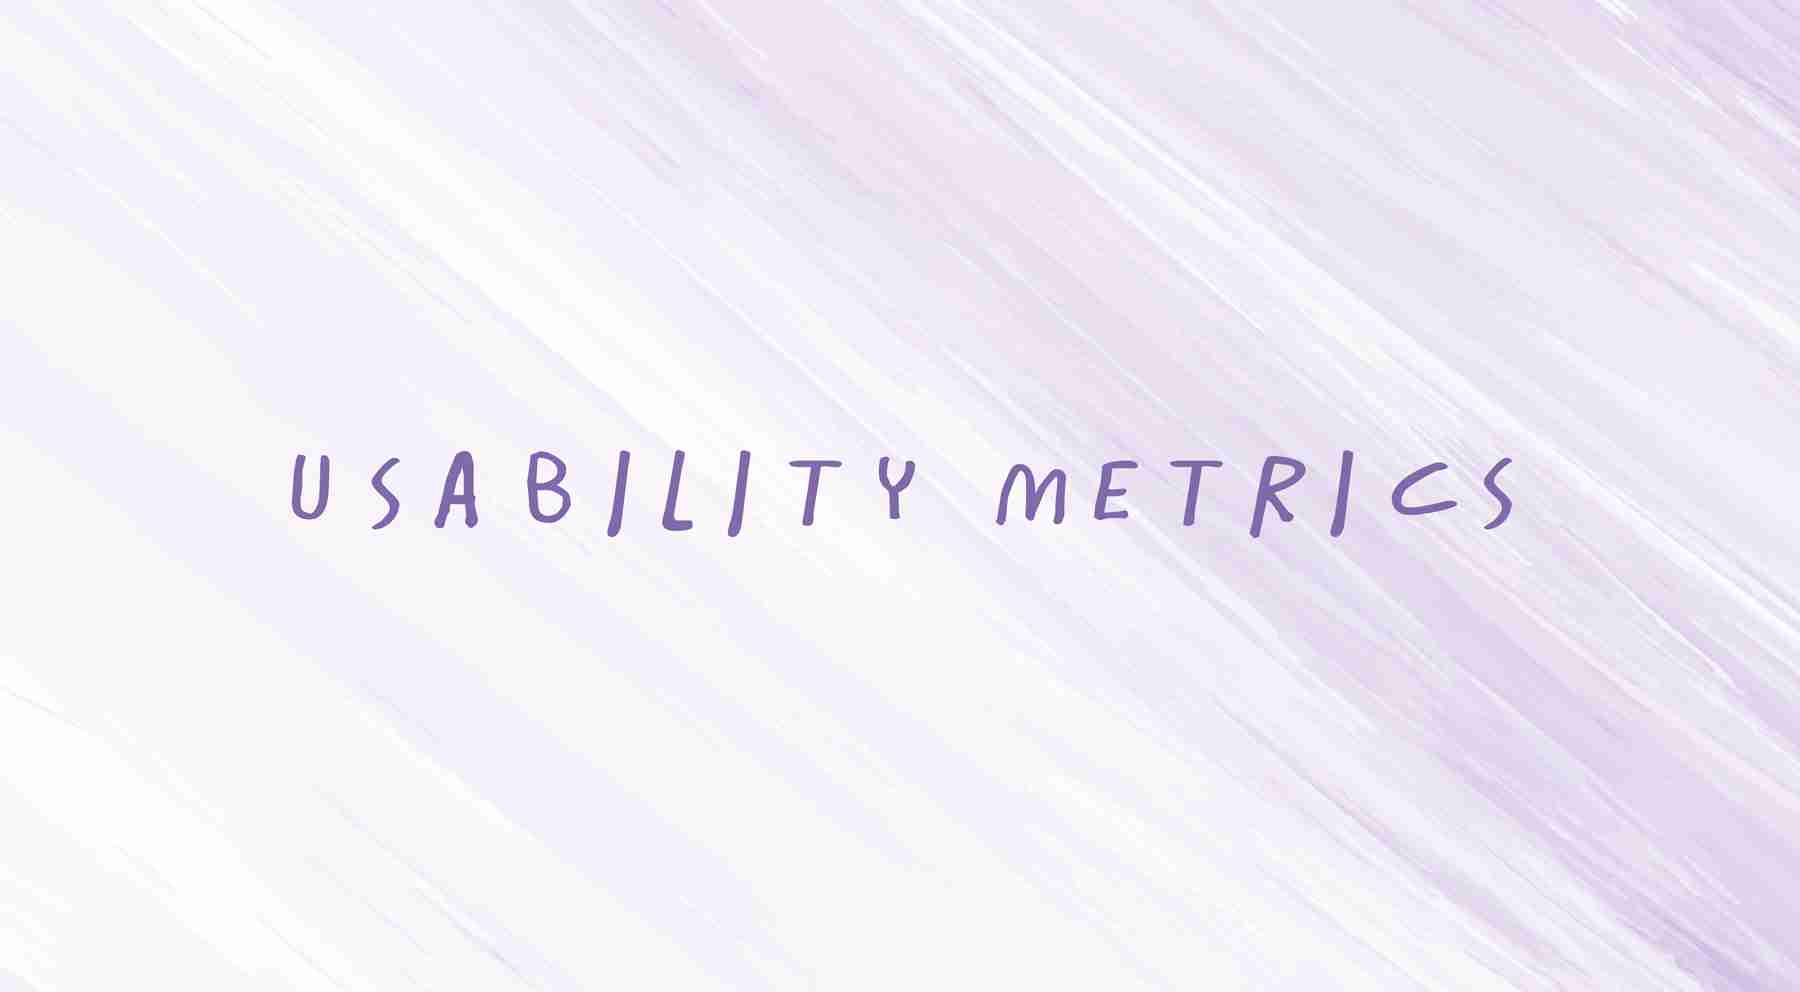 usability-metrics in web design